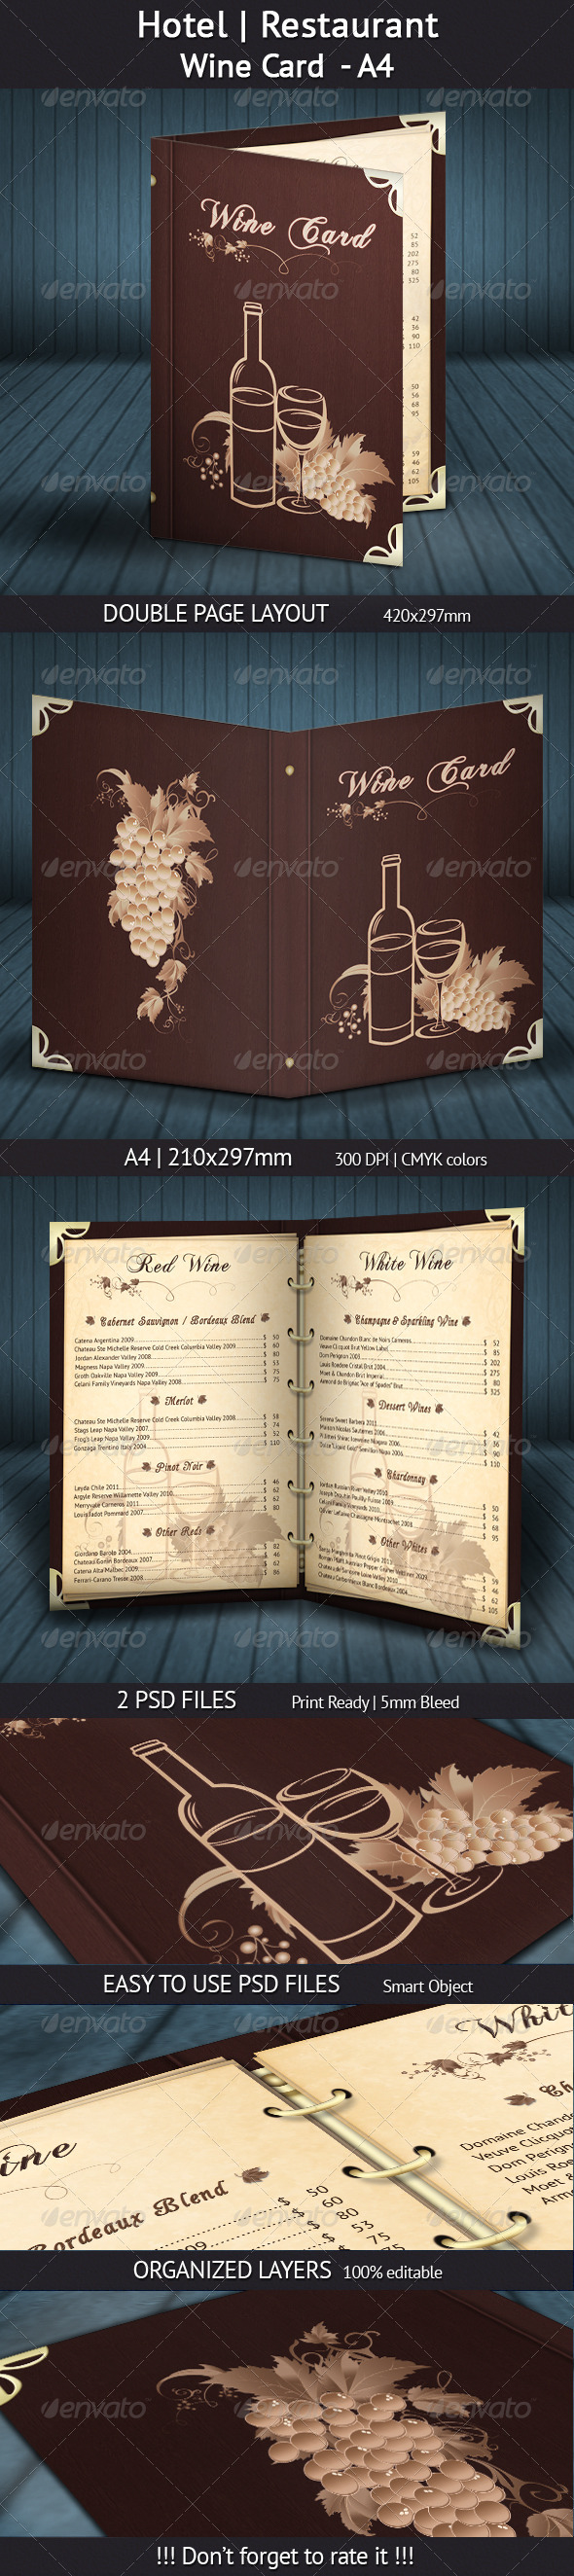 Hotel | Restaurant Wine Card - A4 - Restaurant Flyers